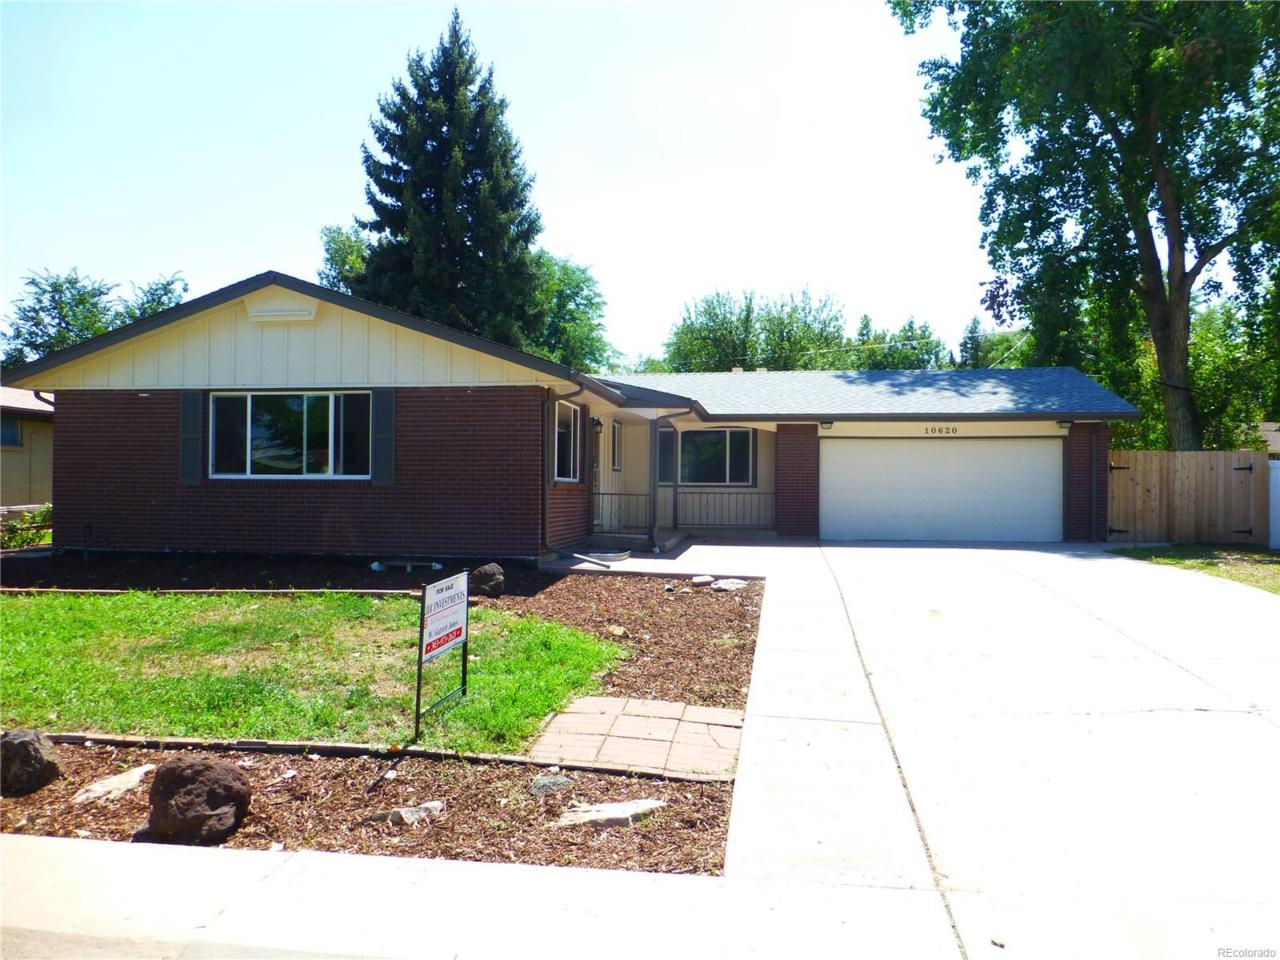 10620 W 62nd Place, Arvada, CO 80004 (MLS #9226702) :: 8z Real Estate